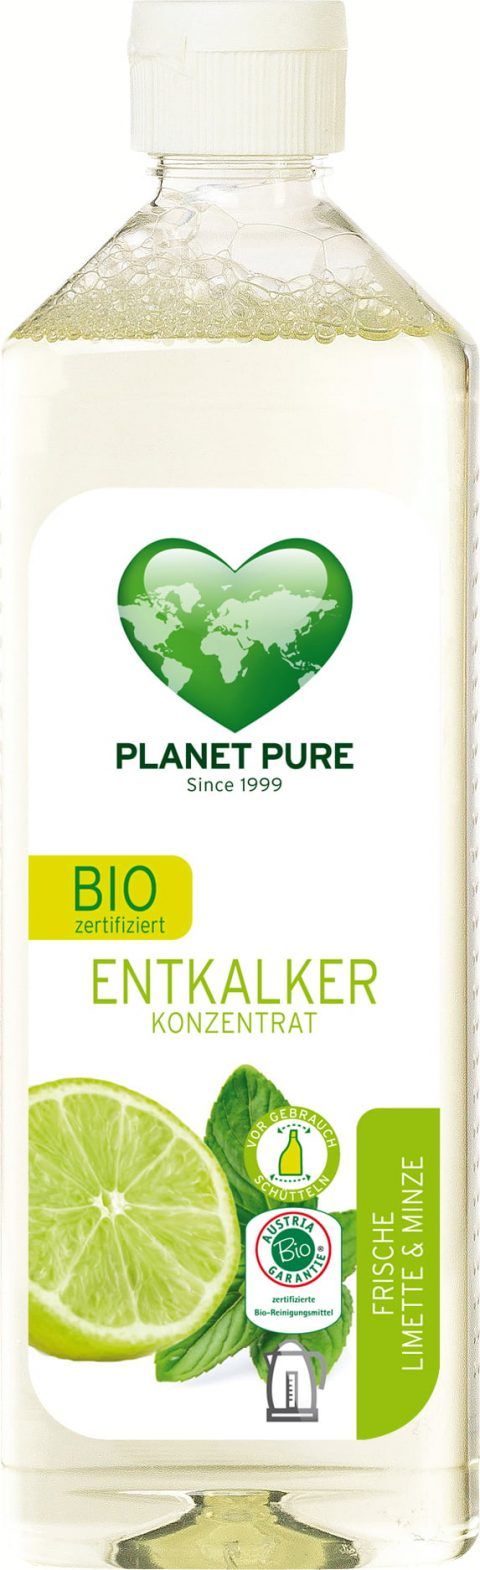 Detartrant bio - lime si menta - 510ml Planet Pure 17